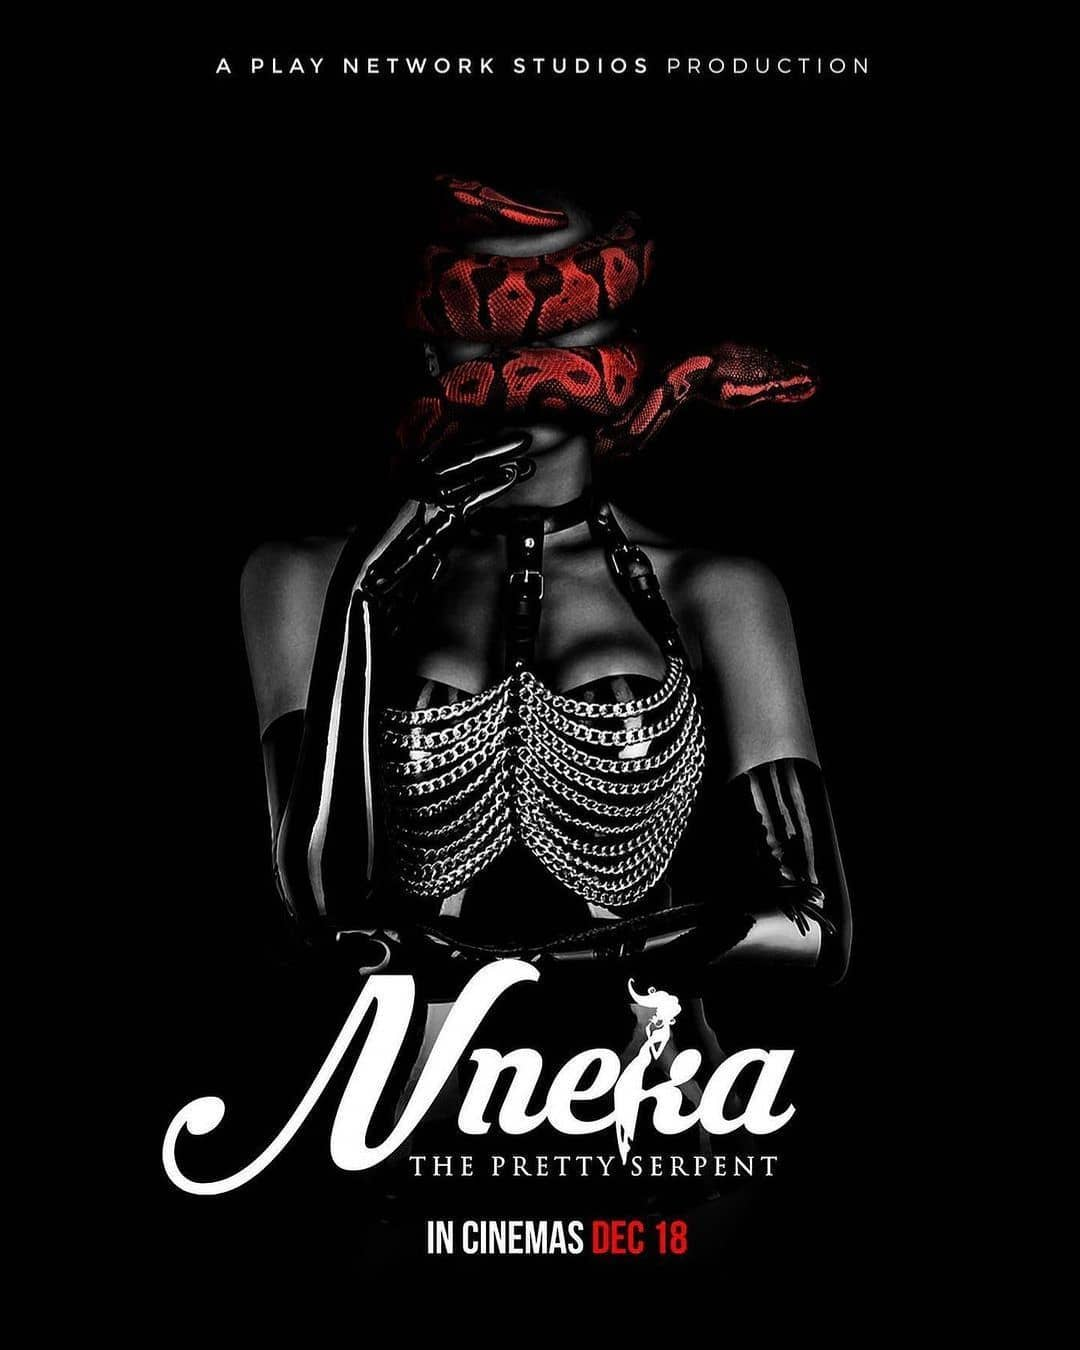 123205673 386819032459774 2311773869564071853 n - Nneka The Pretty Serpent is Executing a Hush Box Office Campaign, Will It Work?